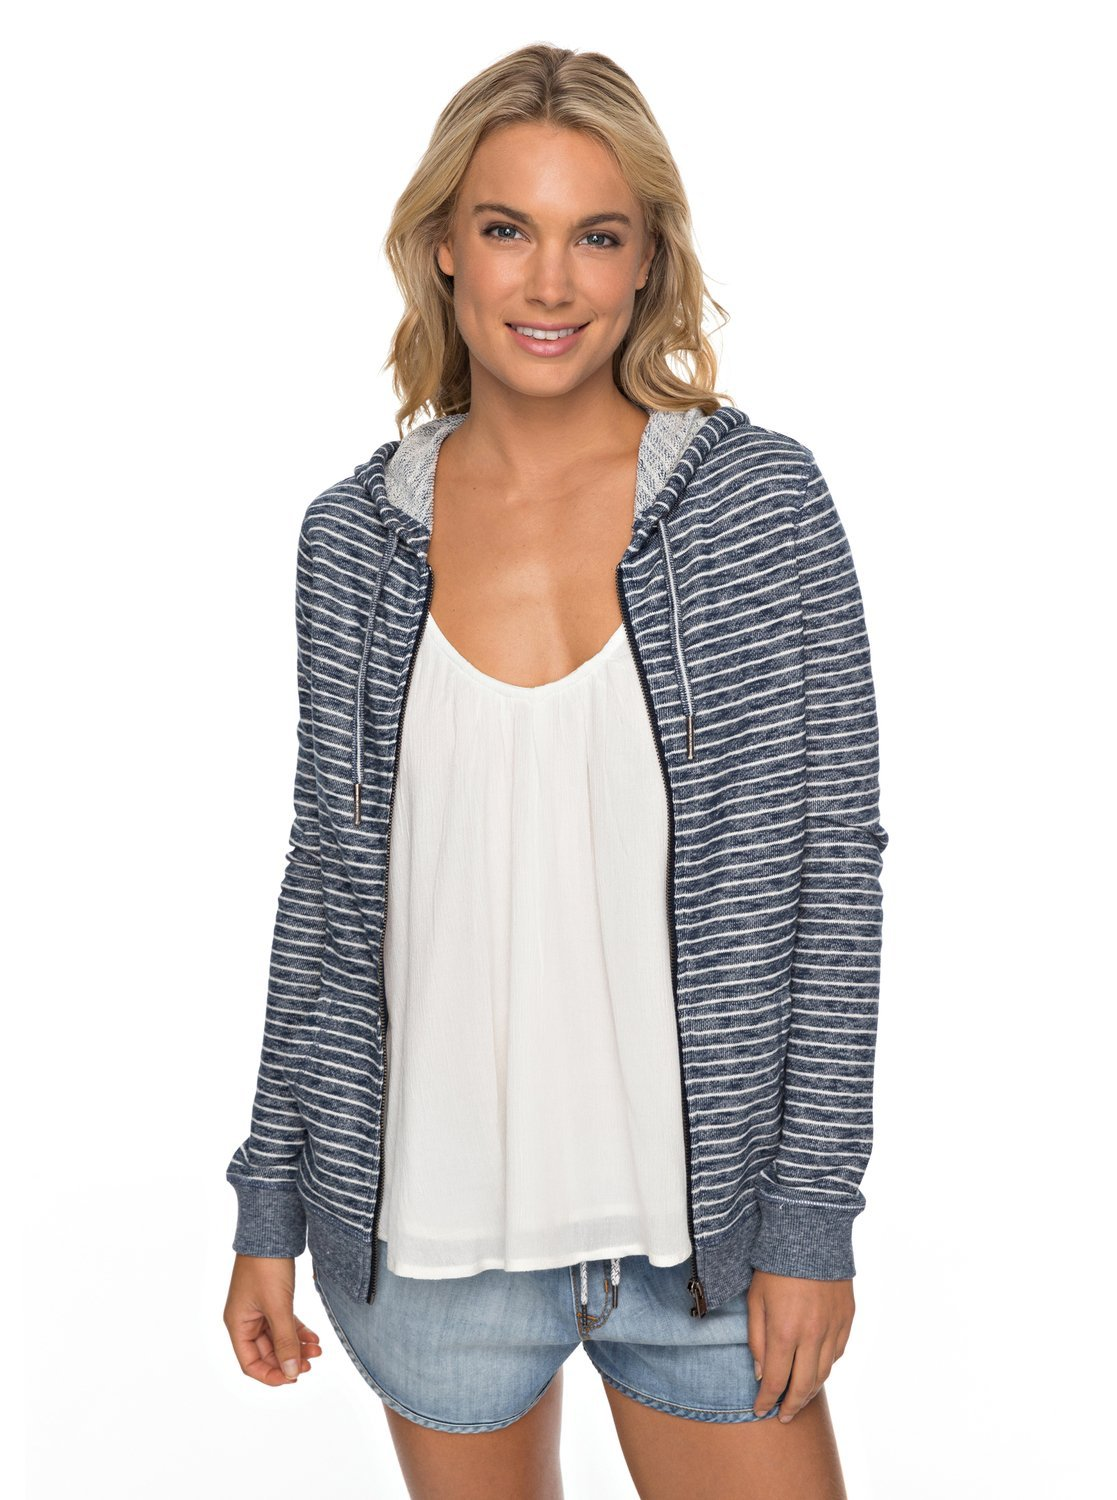 Roxy Junior's Trippin Zip up Fleece Sweatshirt, Marshmallow Just Simple Stripe, M